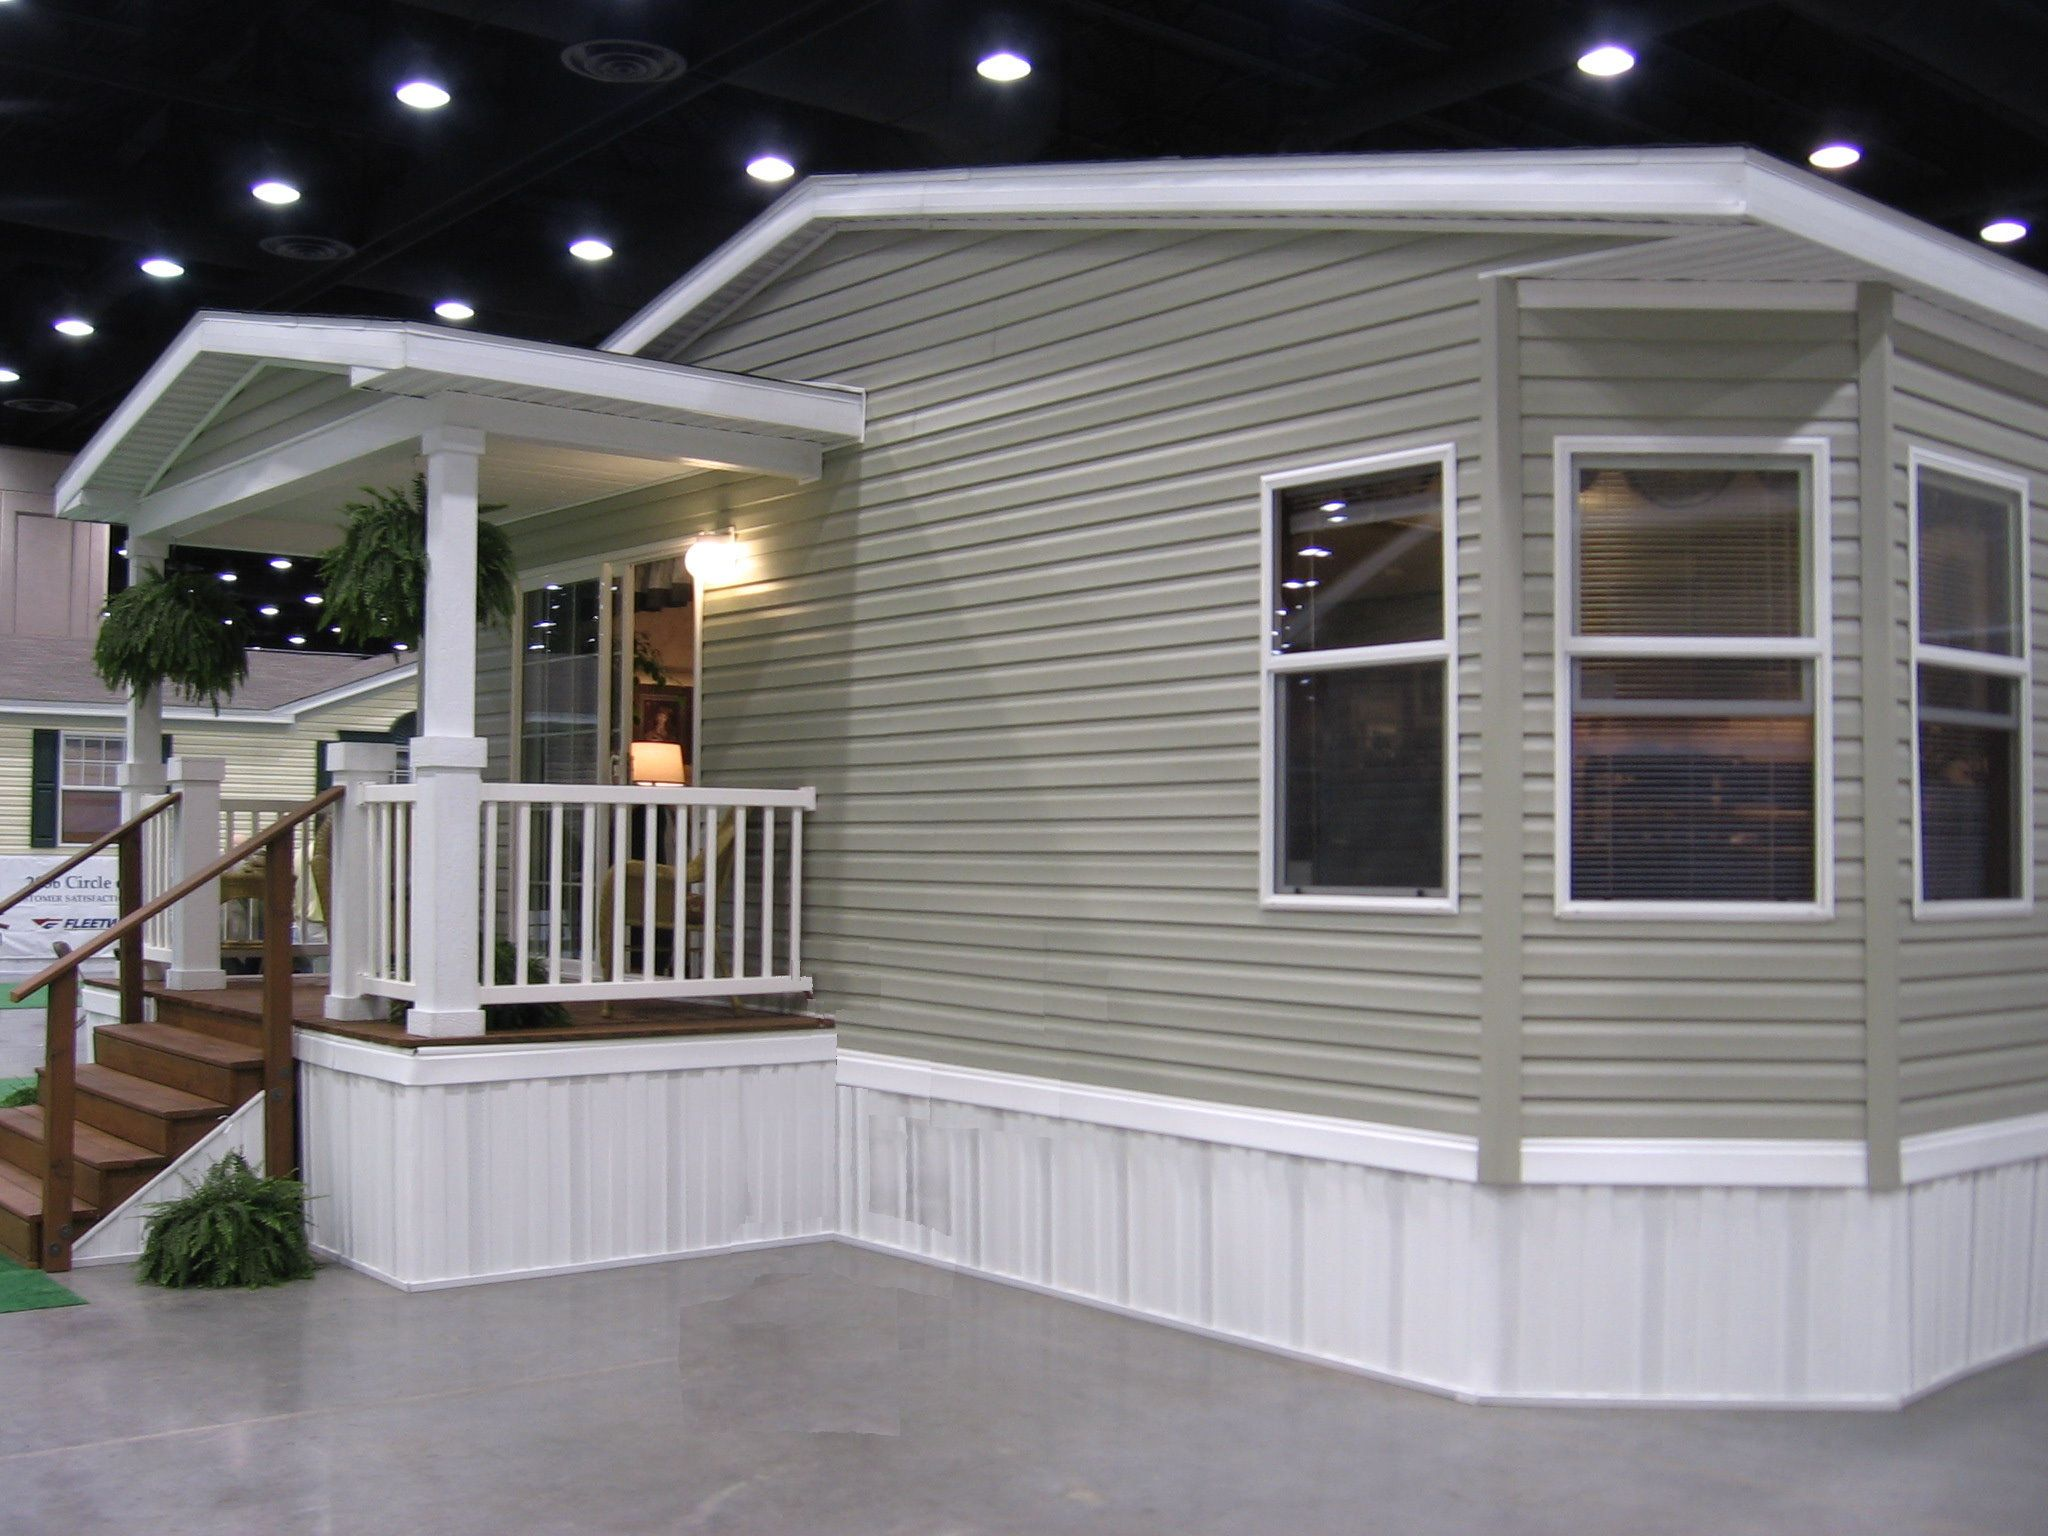 Mobile home deck ideas porch designs for mobile homes Front porch blueprints